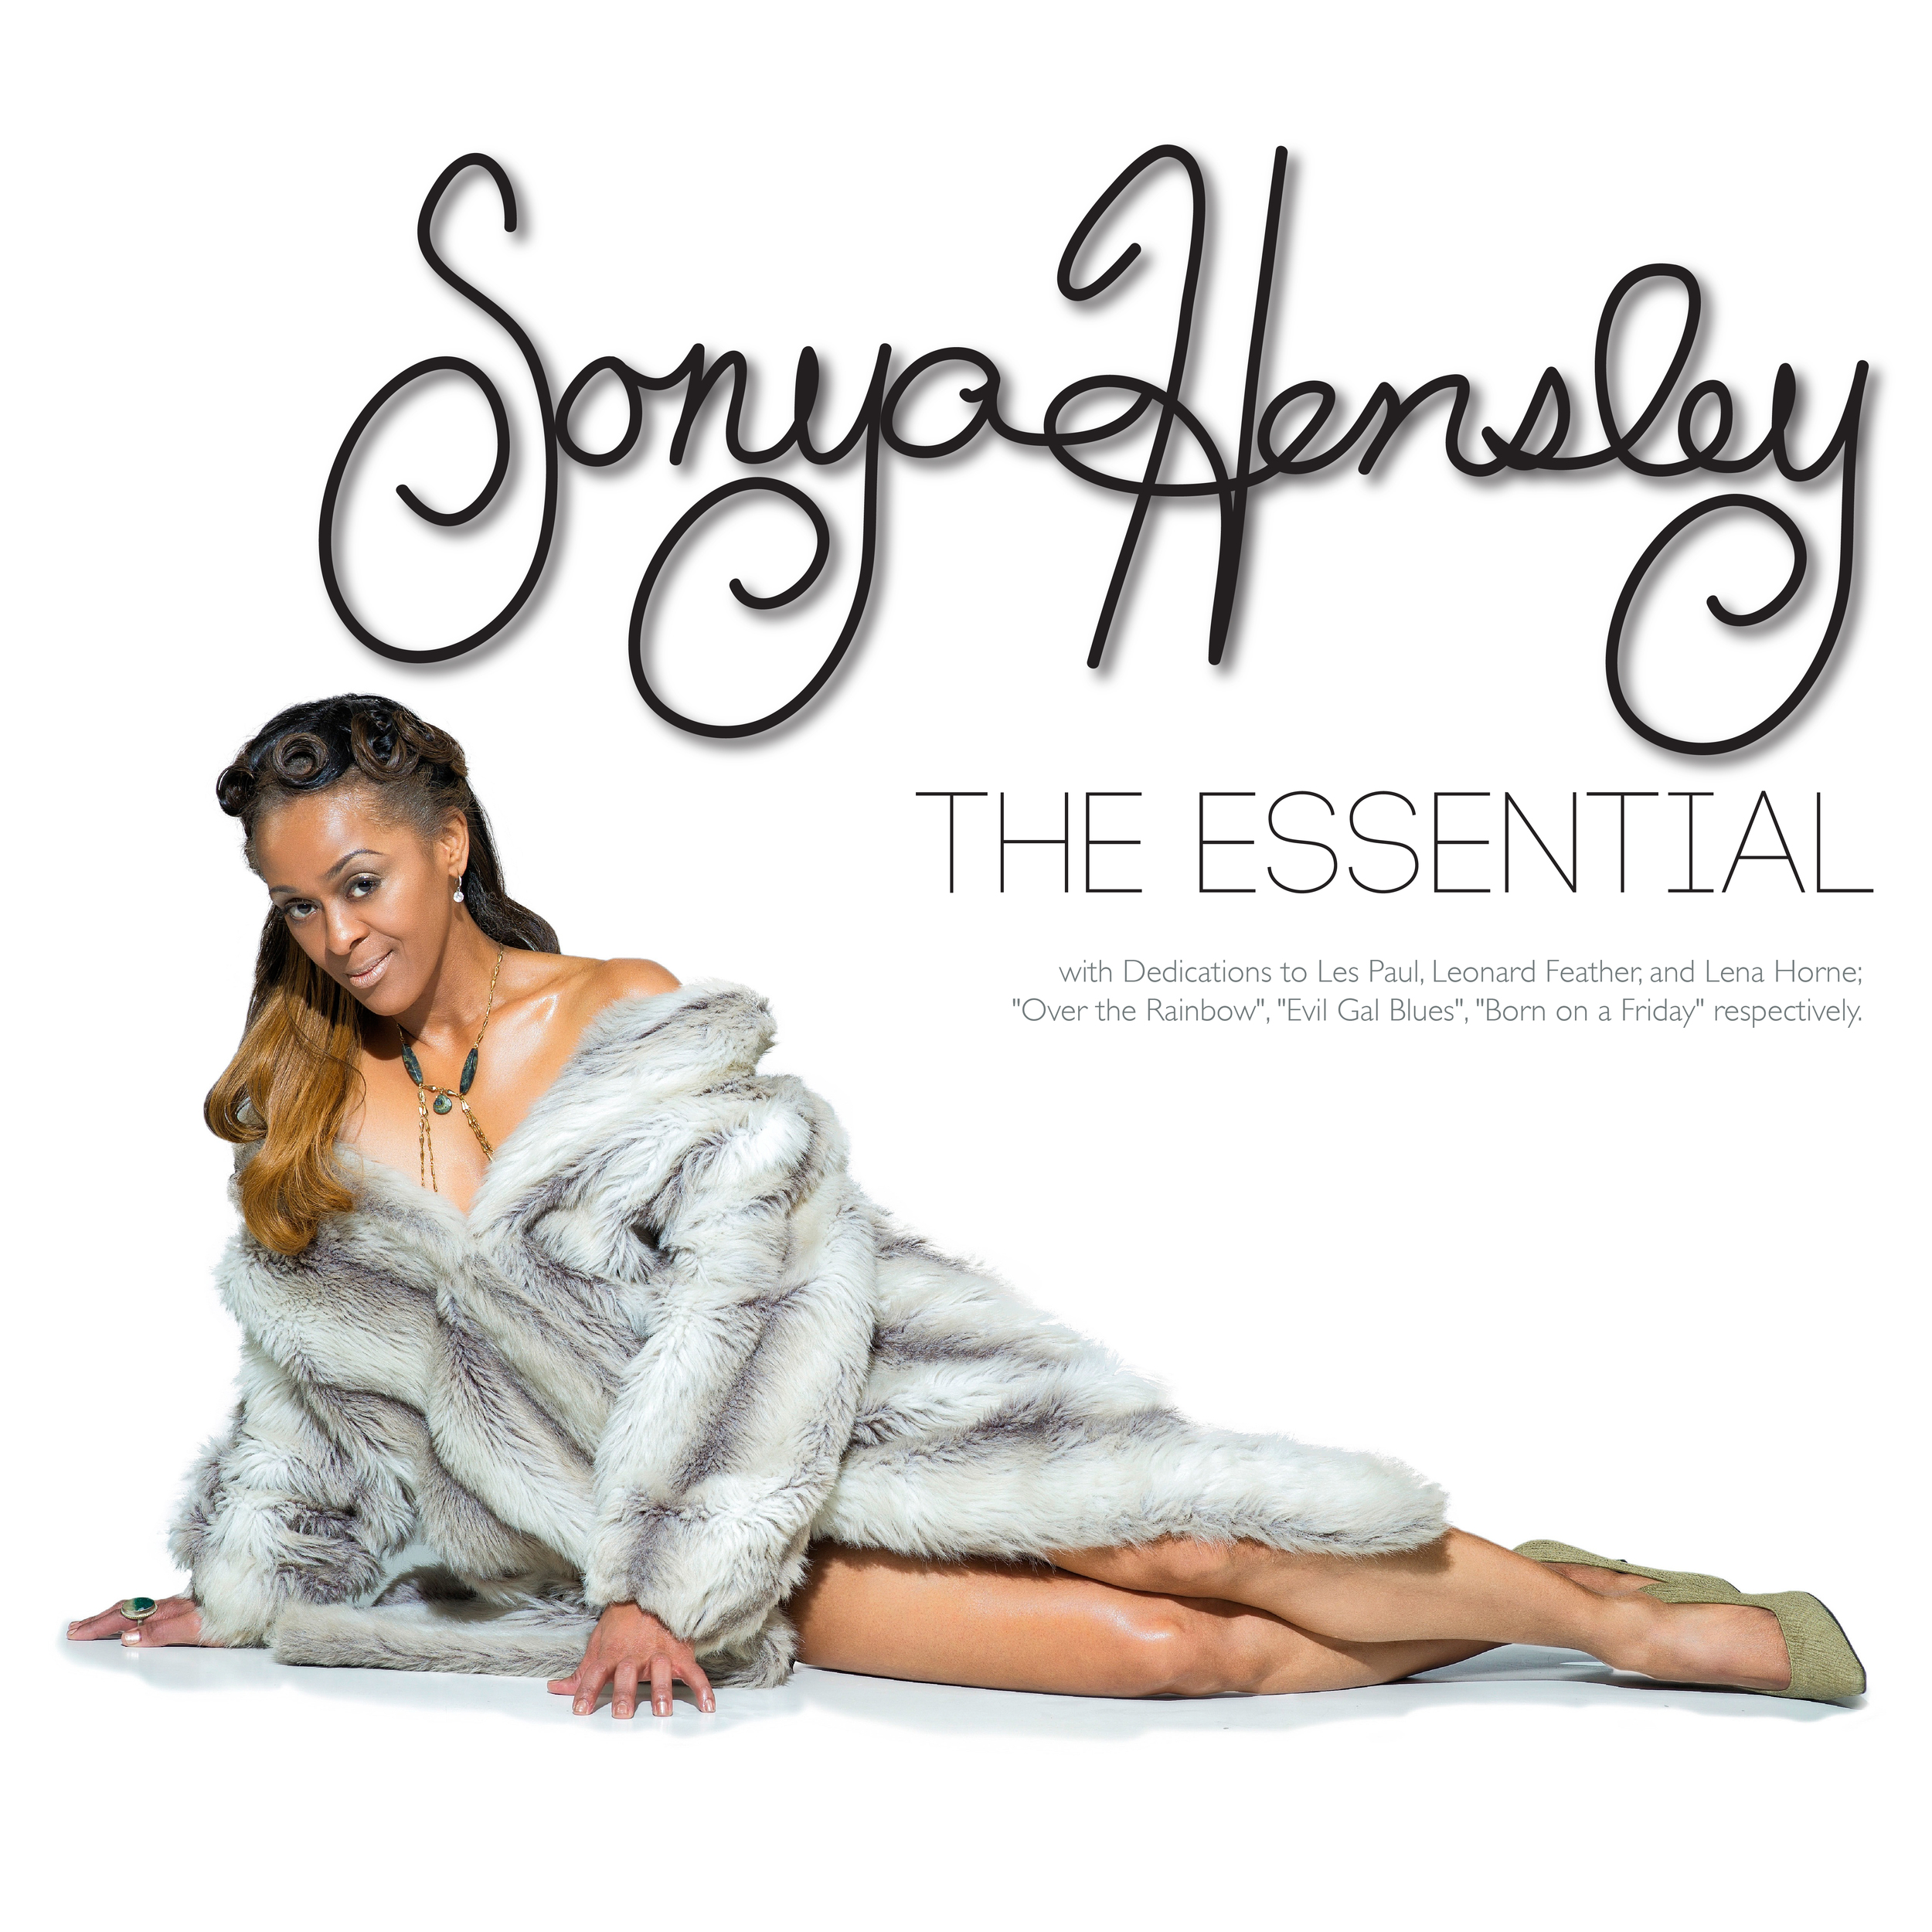 """Click Image To Order """"The Essential"""" On itunes!"""